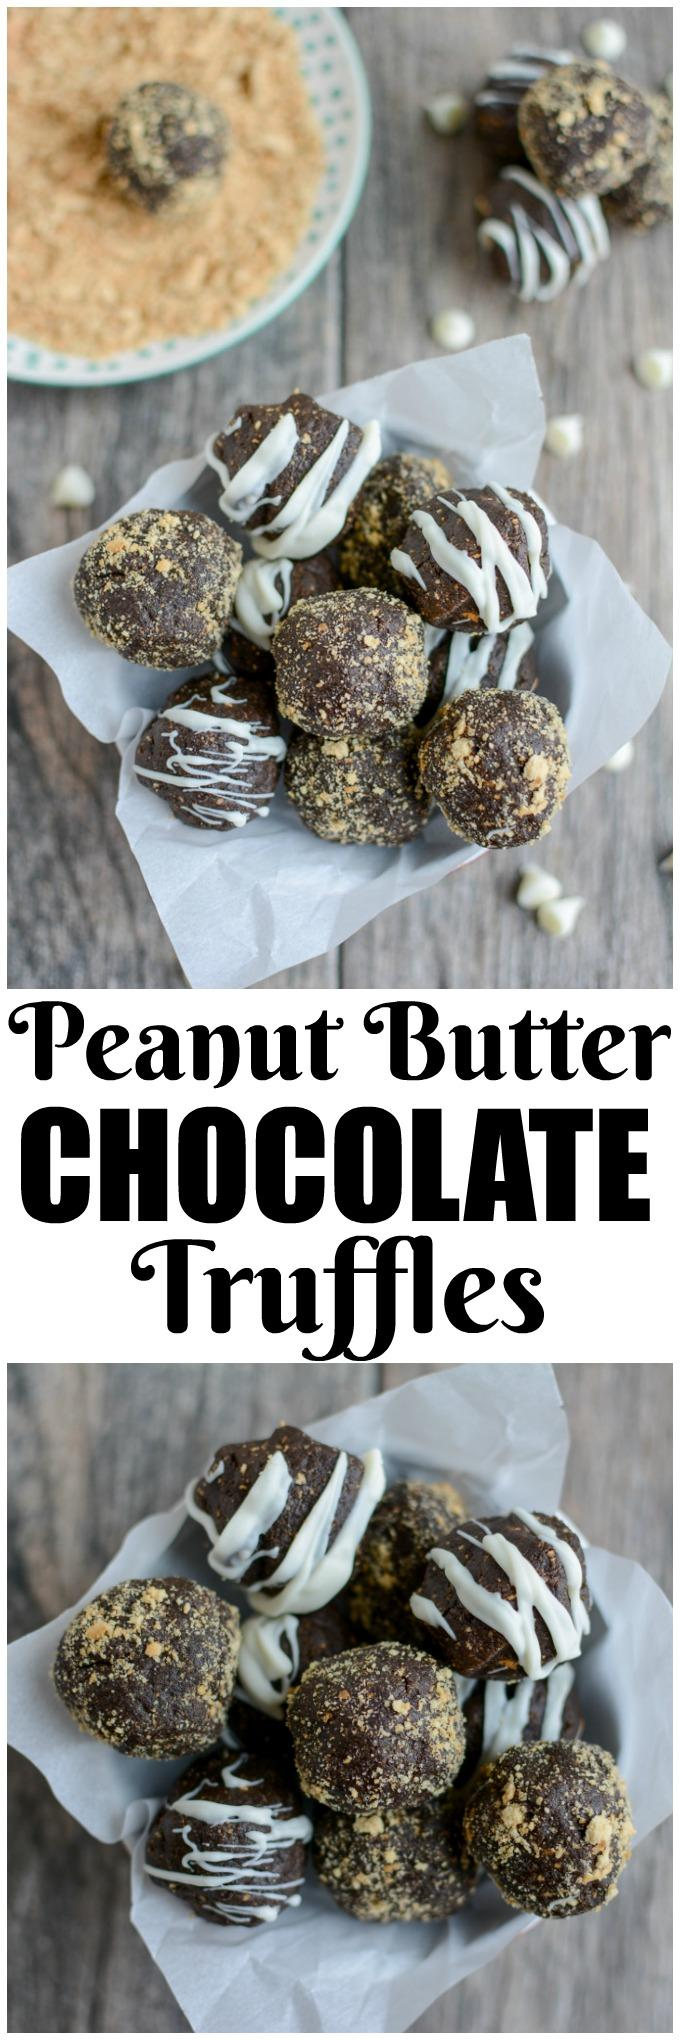 These Peanut Butter Chocolate Truffles are the perfect holiday dessert. Made with just four simple ingredients, they're easy to make and deliciously rich. Roll them in graham crackers or drizzle with chocolate to make them a little fancier!